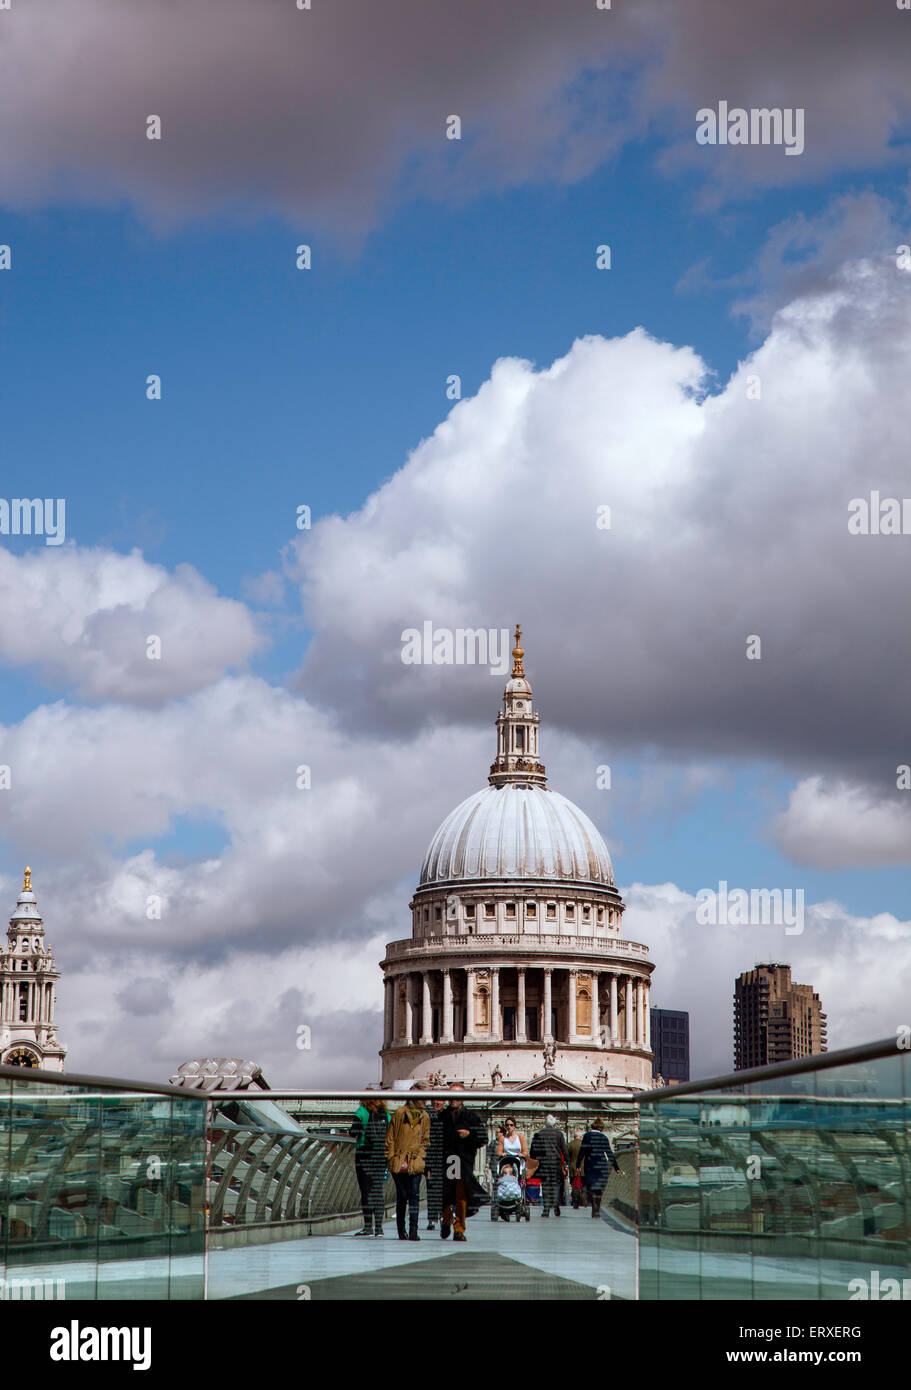 A view of St. Paul's cathedral from the Millenium Bridge, London. - Stock Image